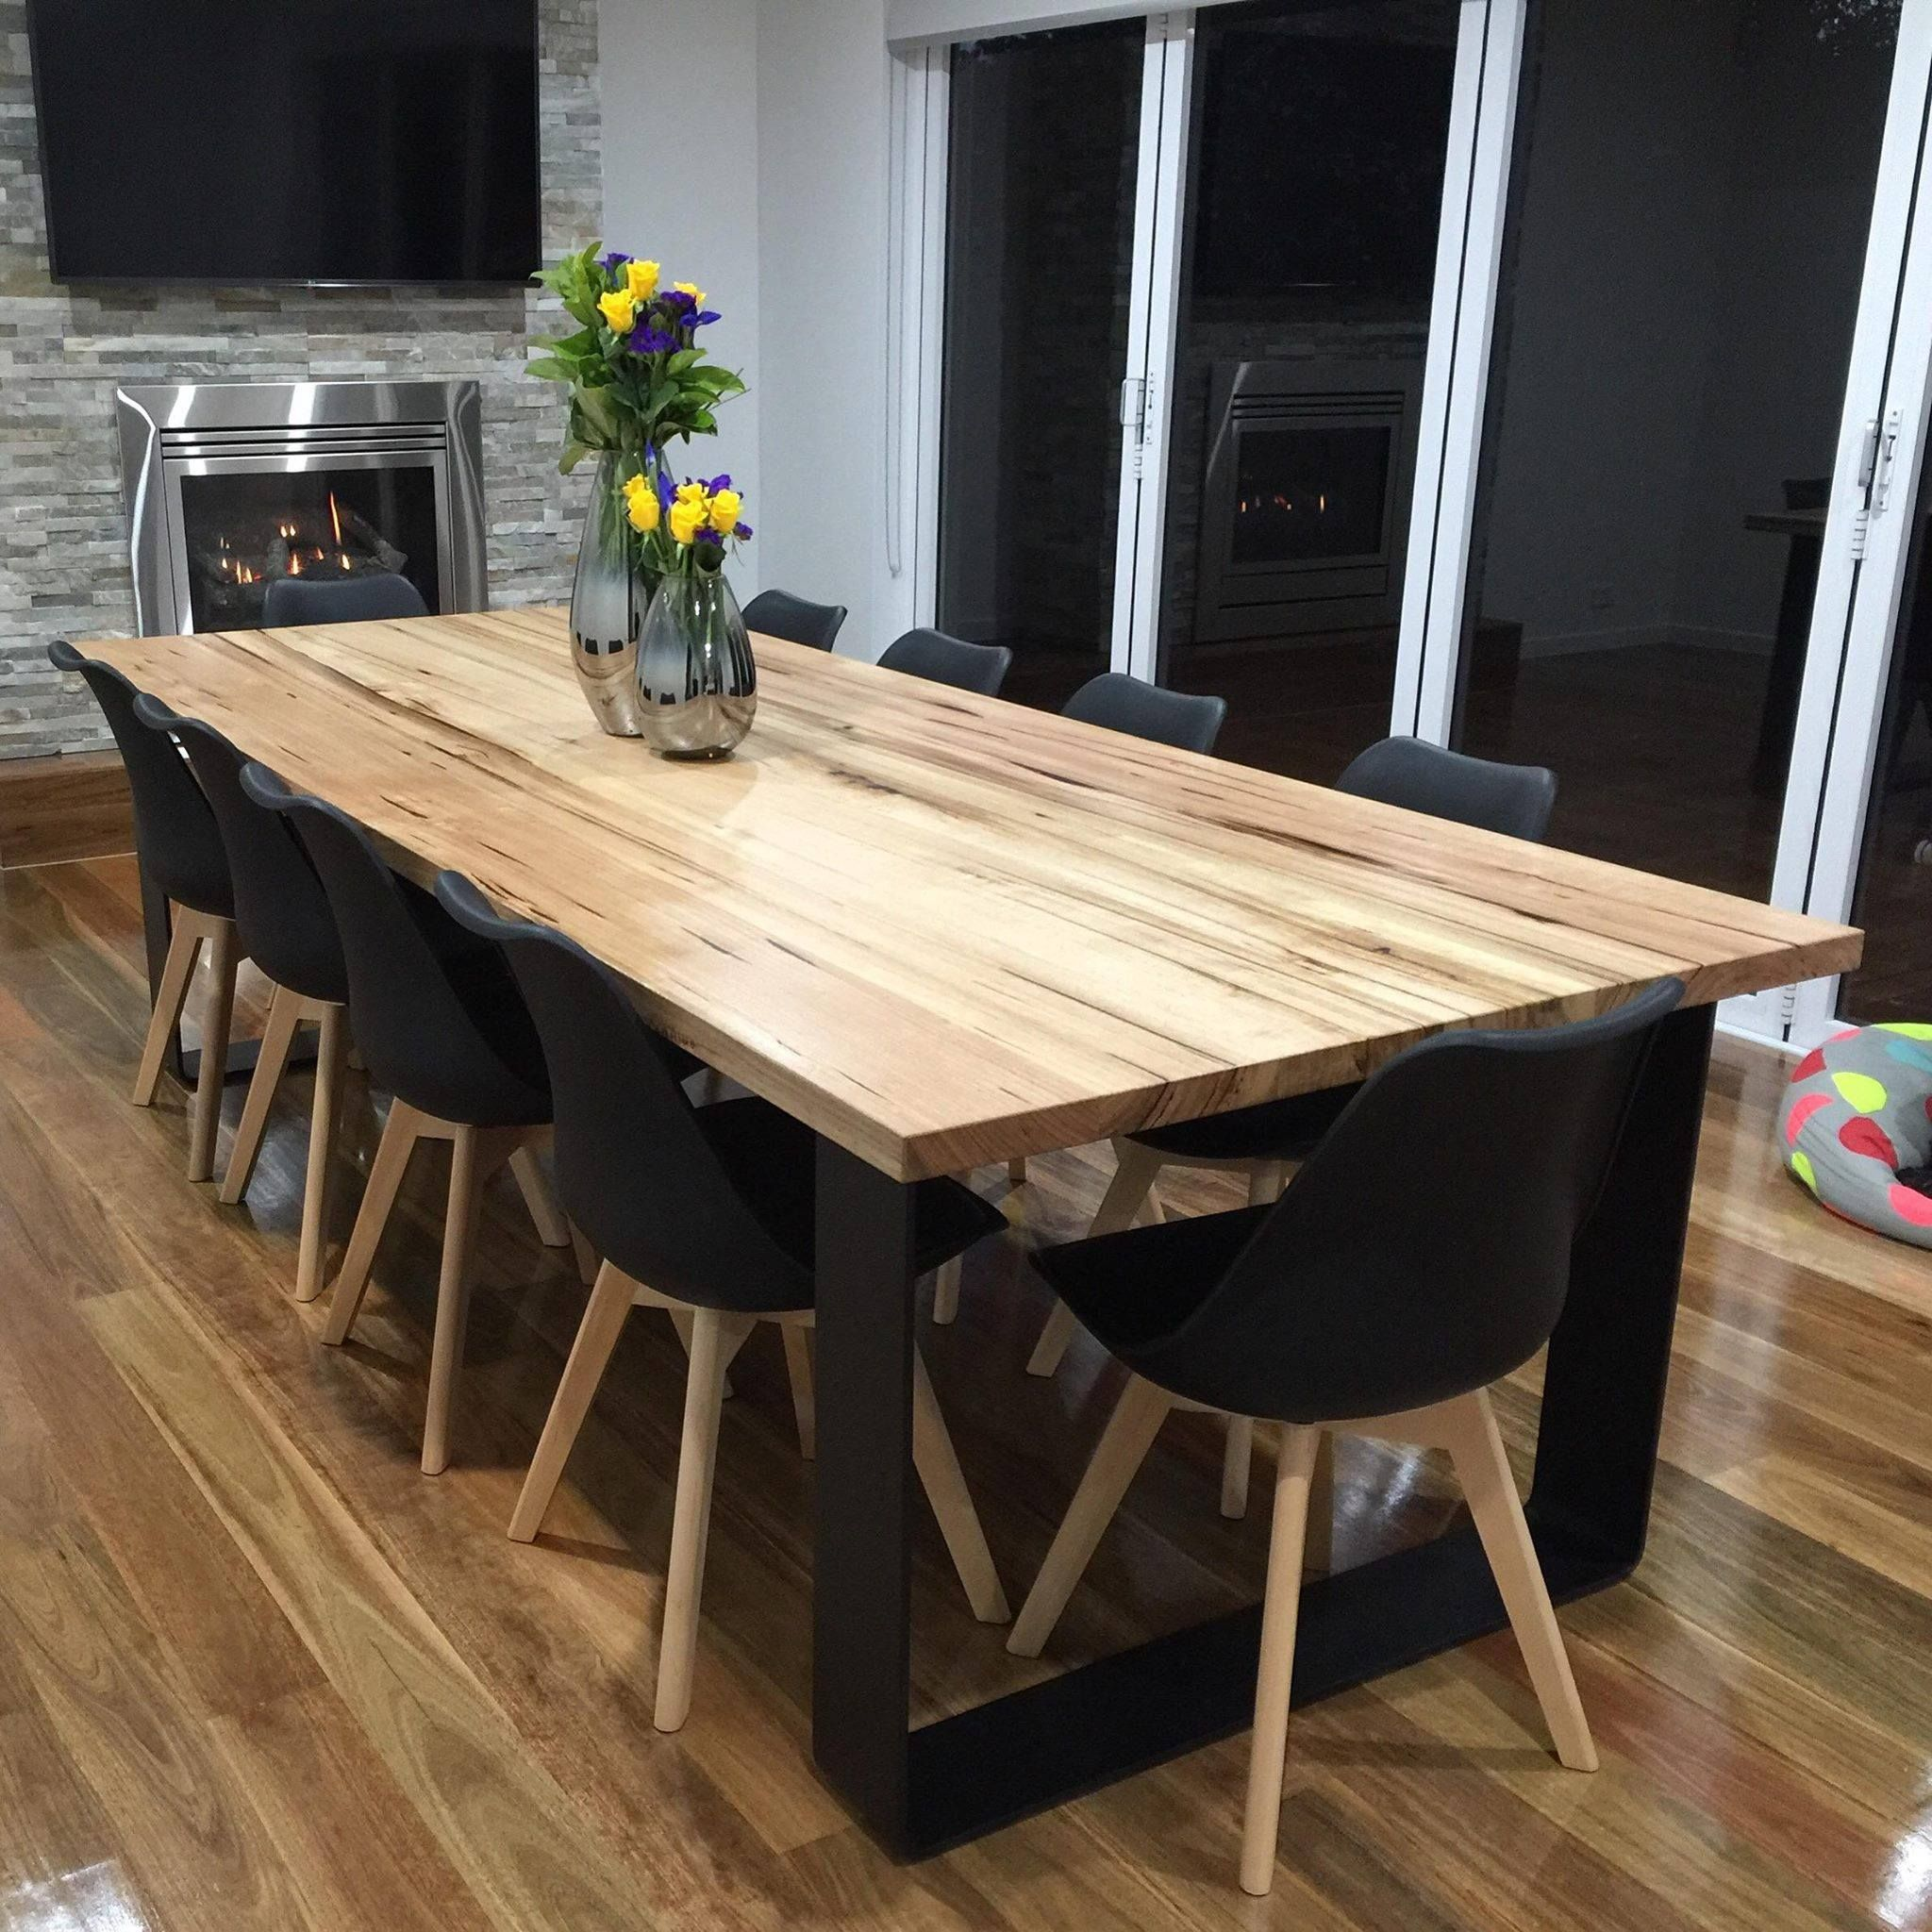 Dining Tables Australia All it takes is just one piece of